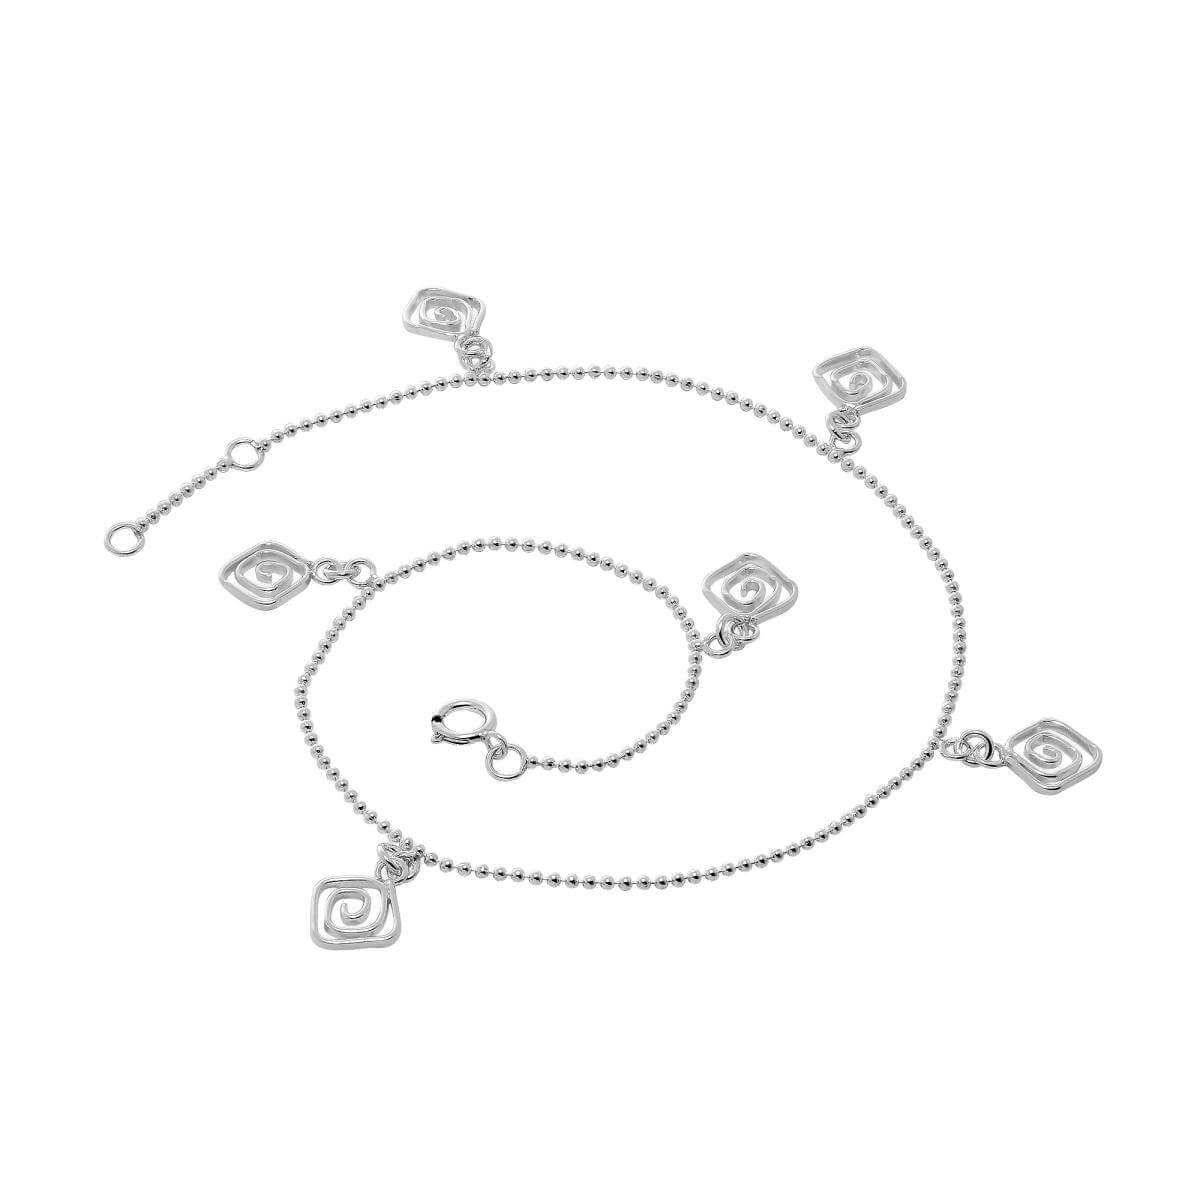 Sterling Silver Bead Chain Anklet with Square Swirl Charms